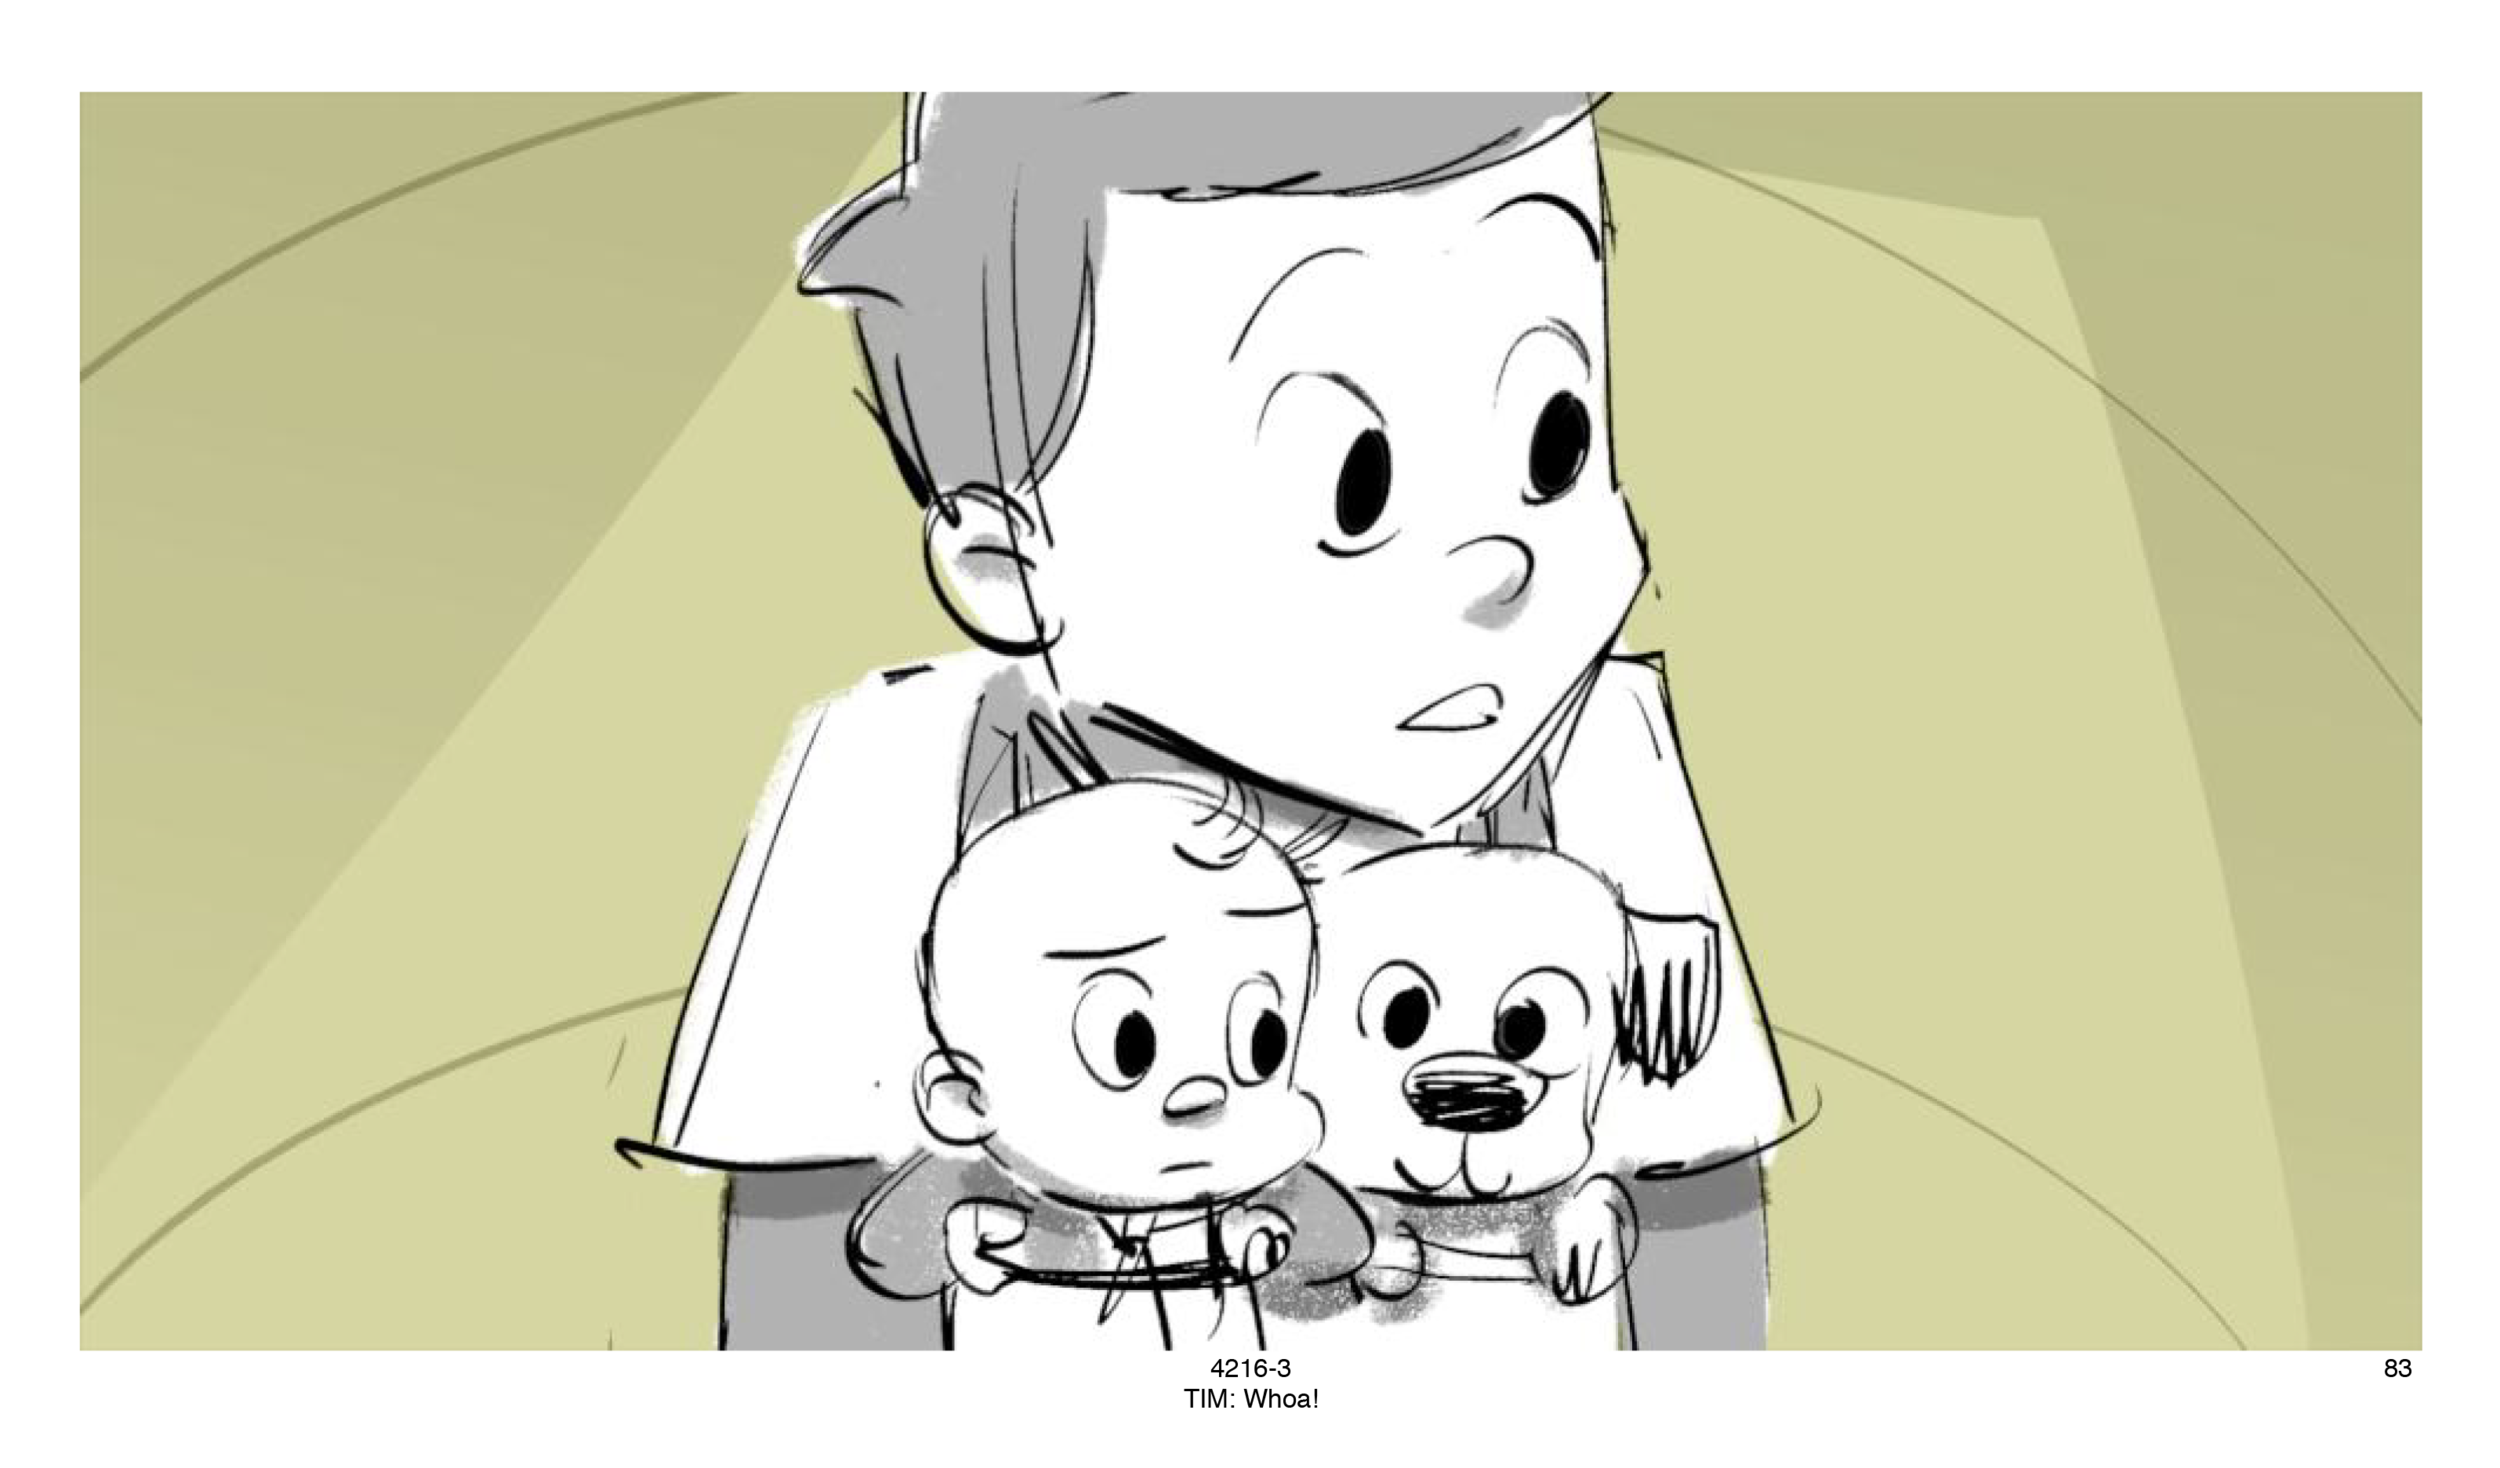 BossBaby_083.png